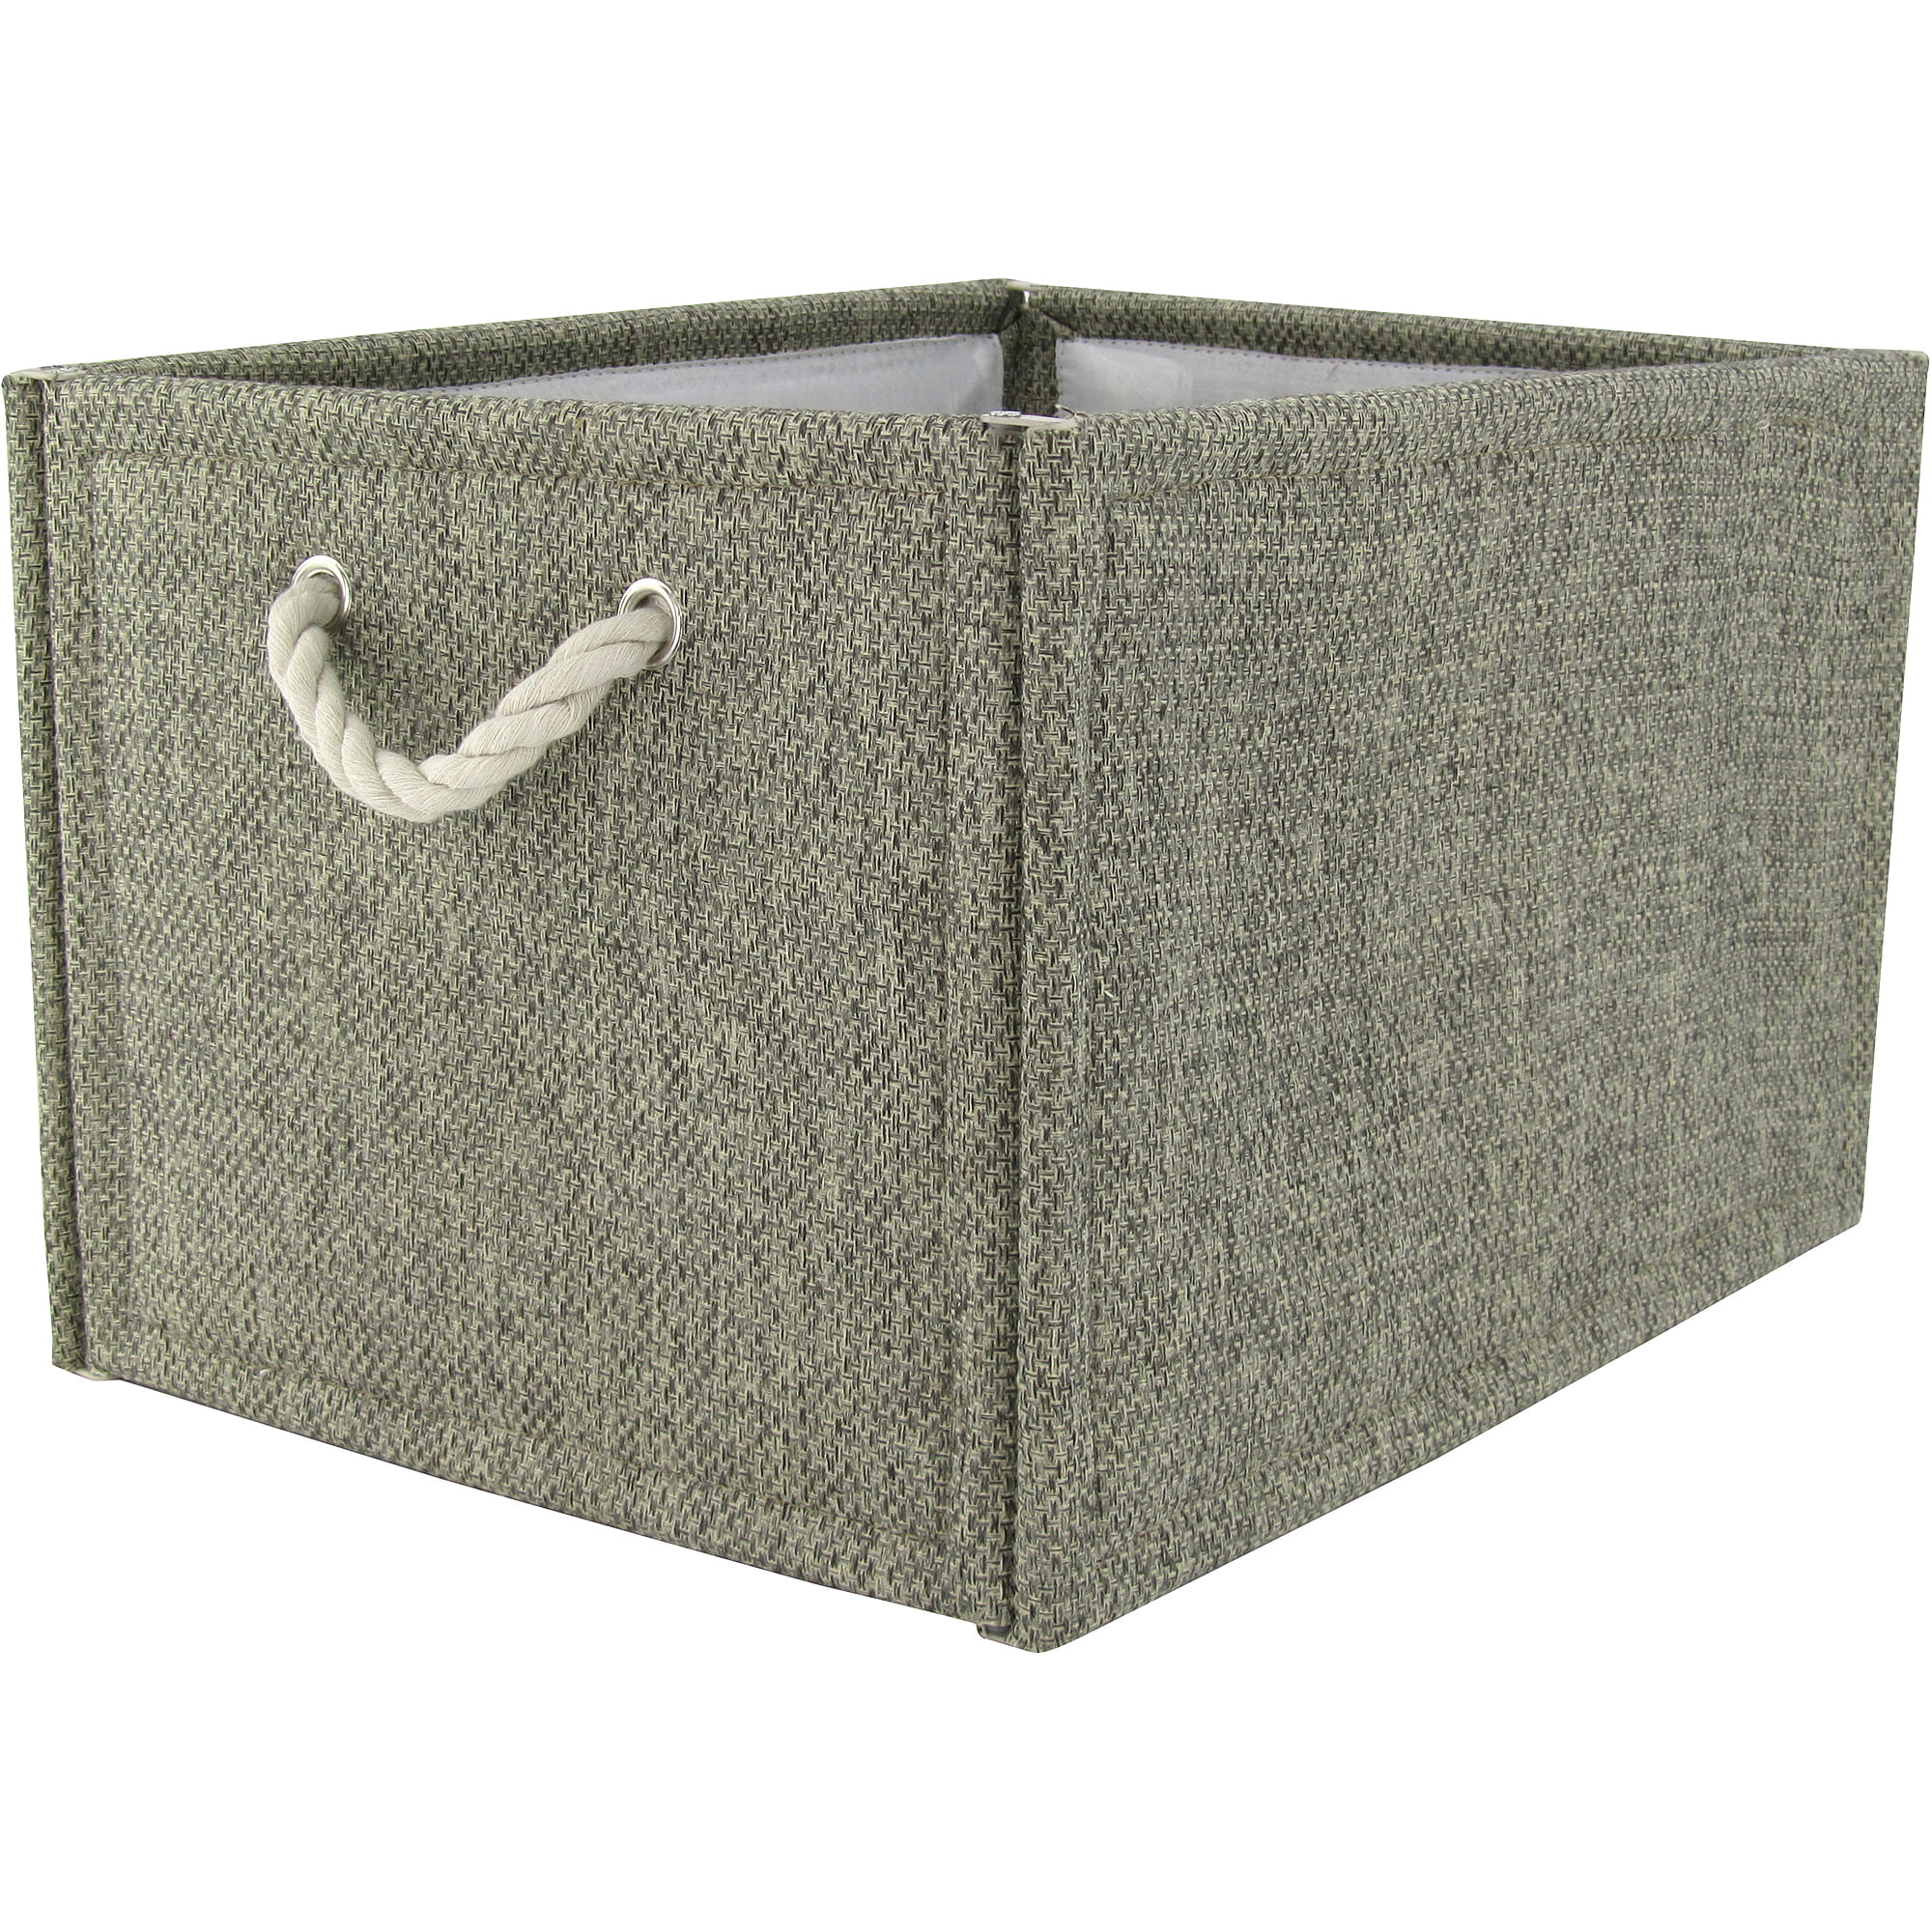 sc 1 st  Walmart & Hometrends Fabric Storage Box Brown - Walmart.com